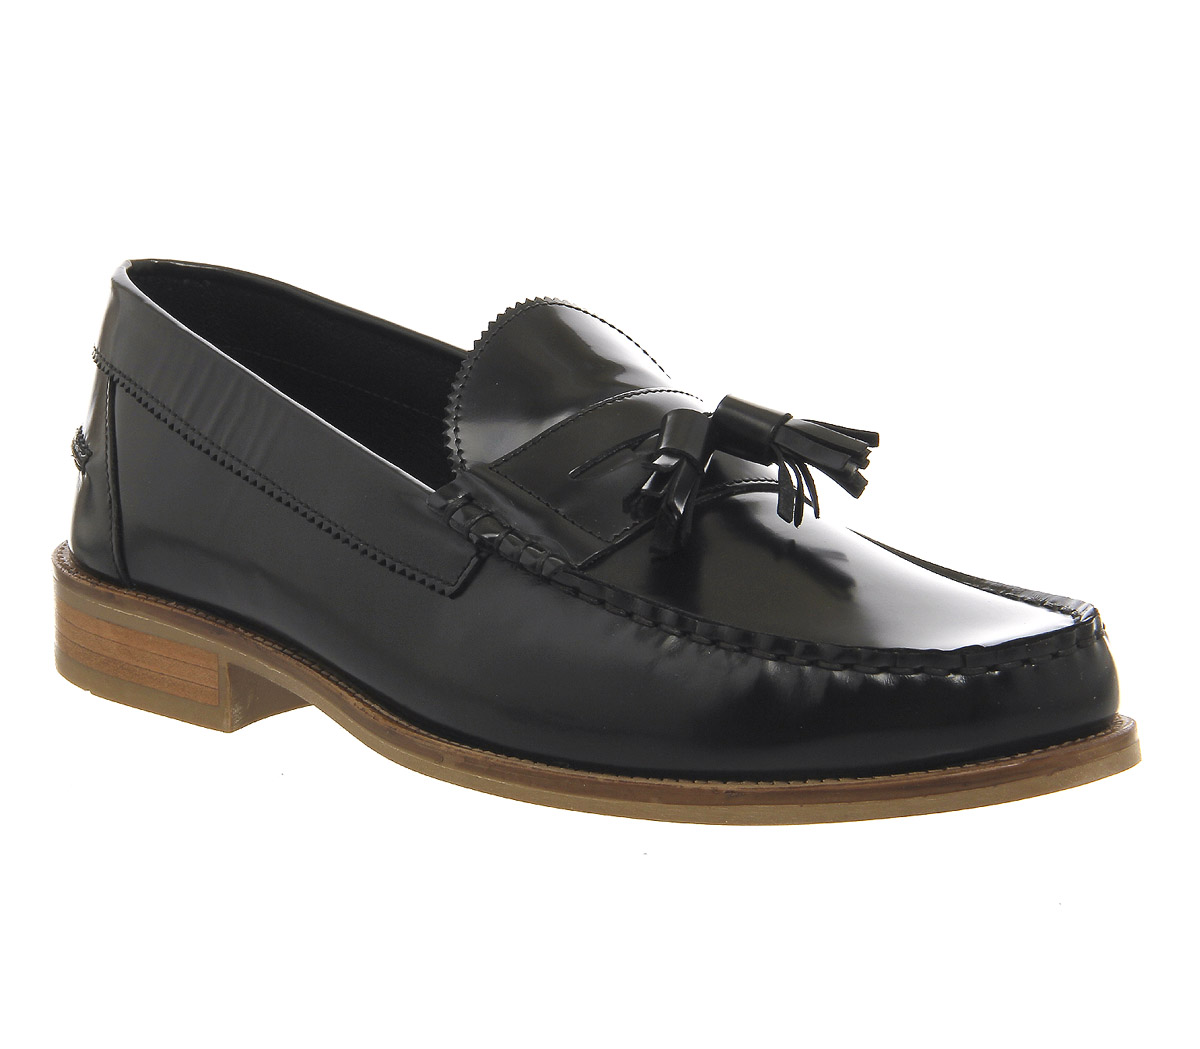 Mens Ask the Missus Bonjourno Tassel Loafers BLACK HI SHINE LEATHER Casual Shoes